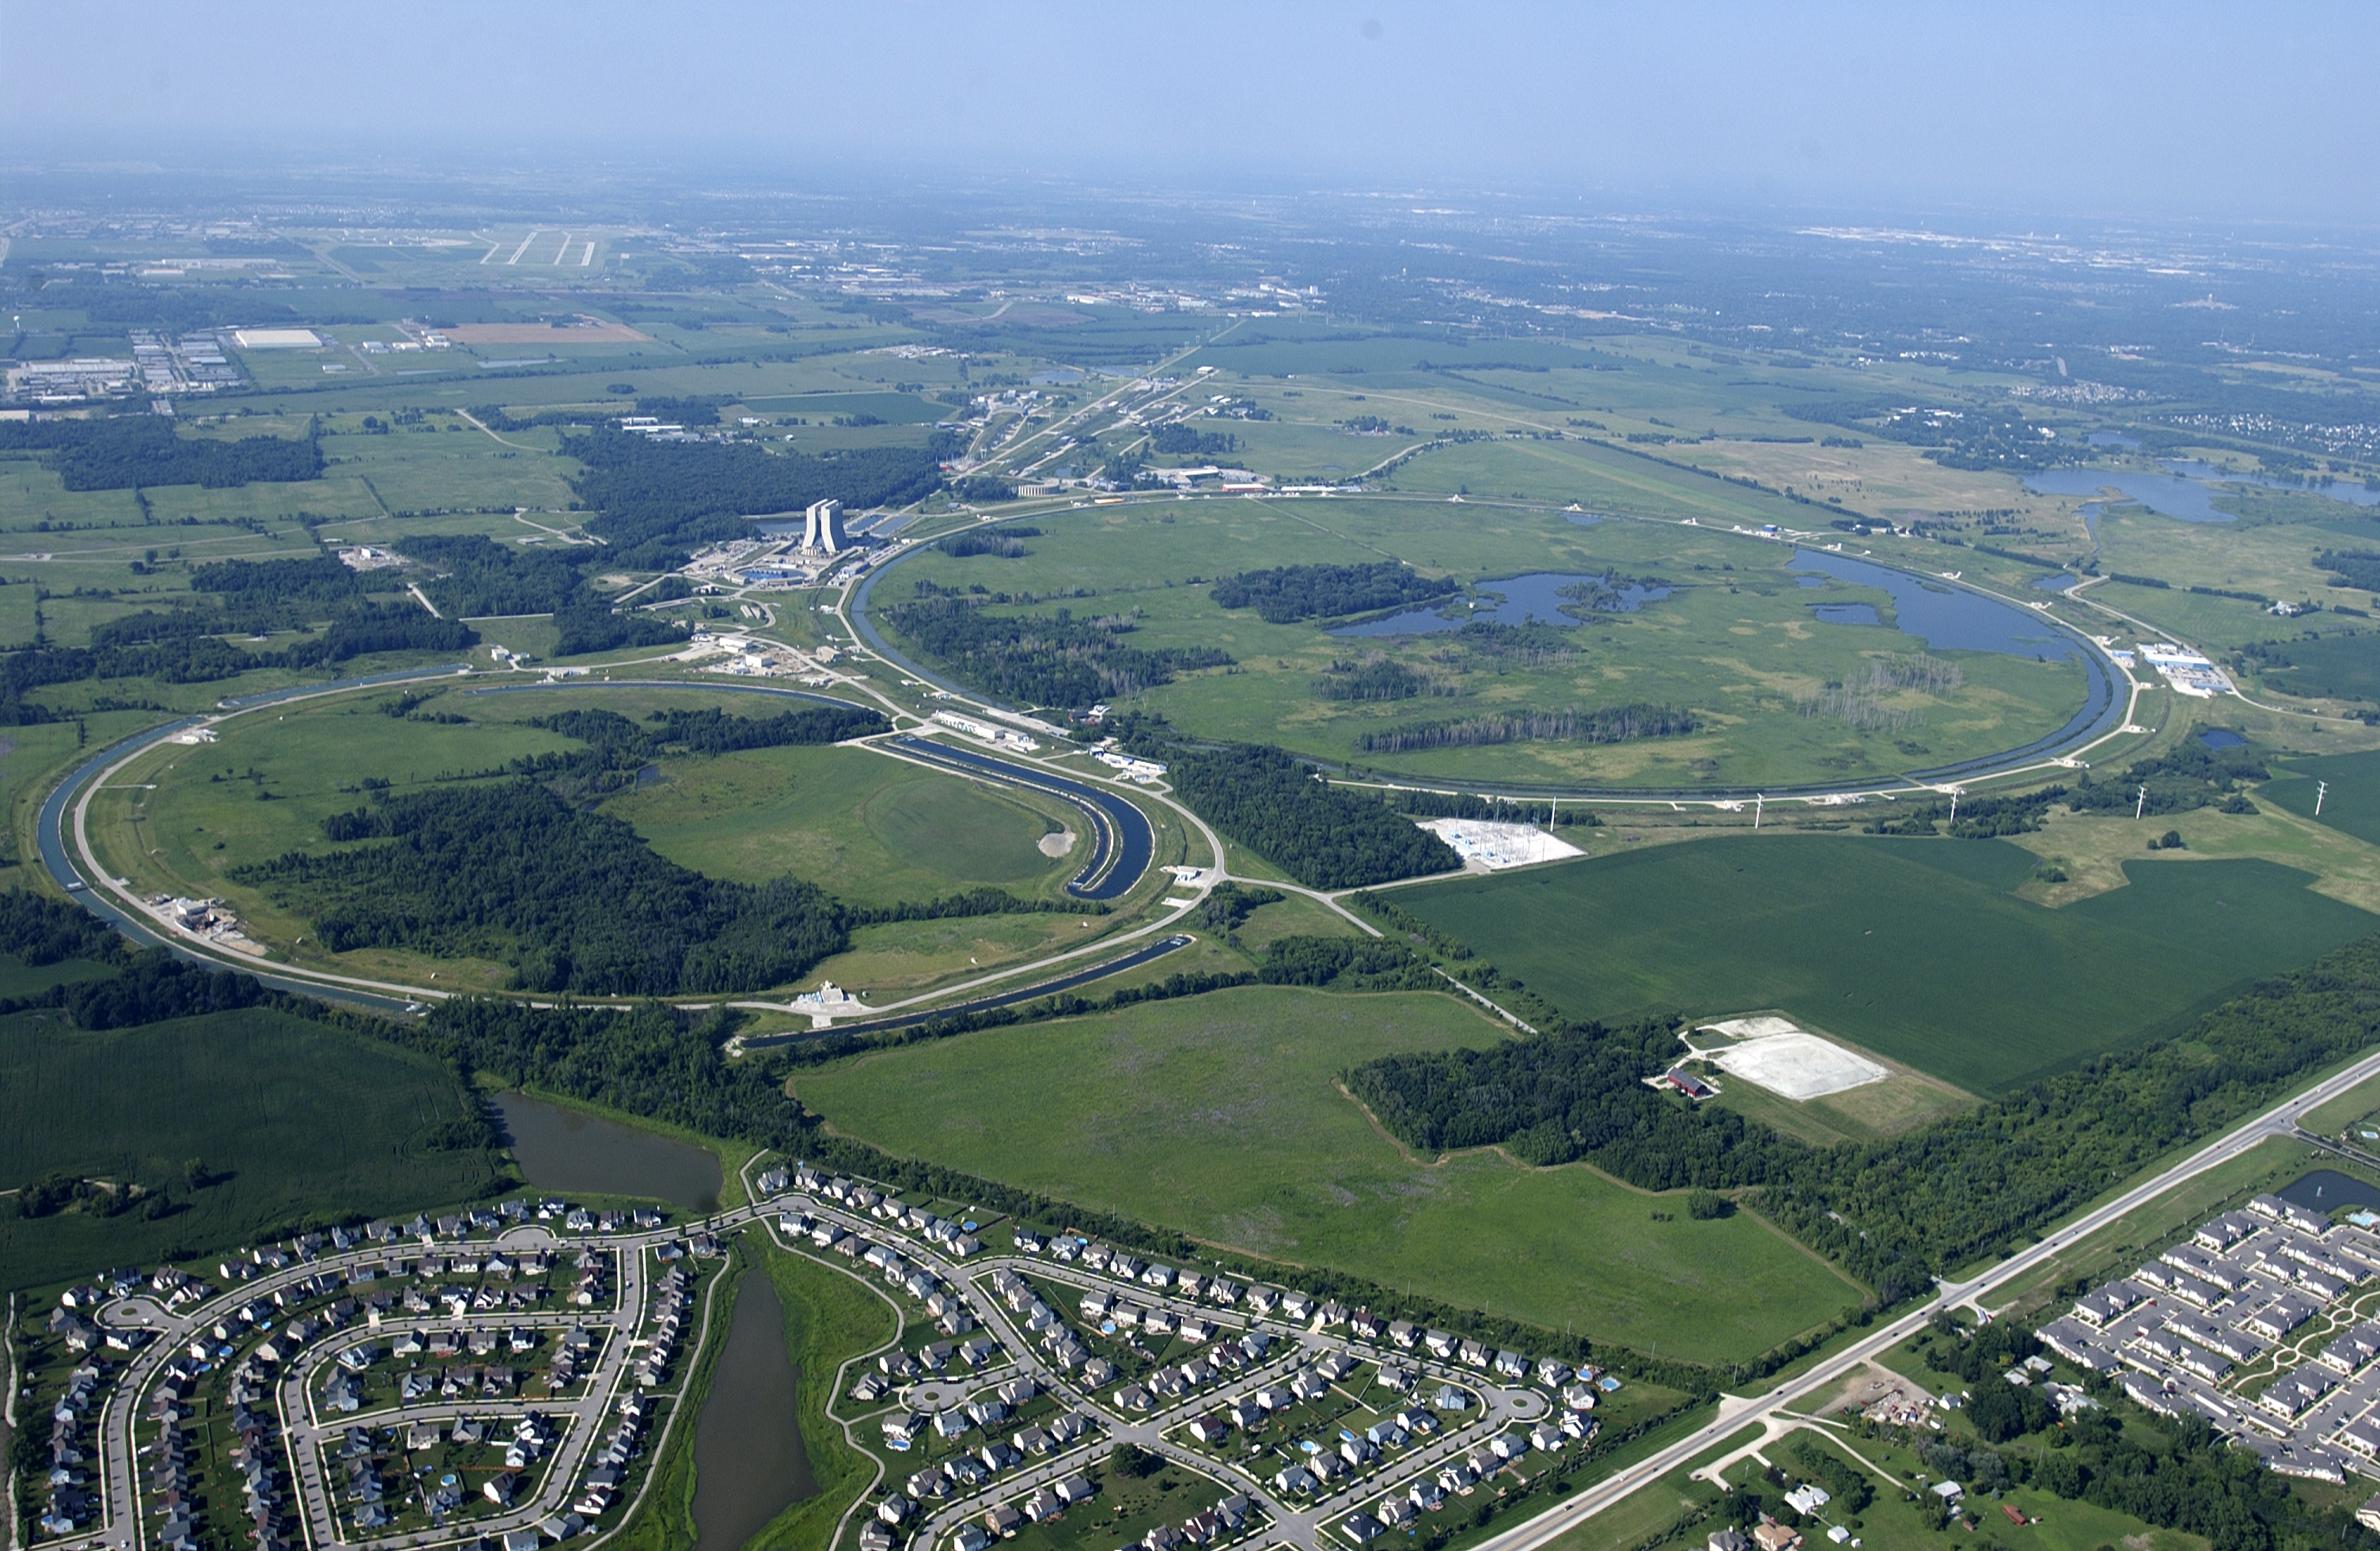 Aerial view of Fermilab, a national physics laboratory in Aurora, Illinois.